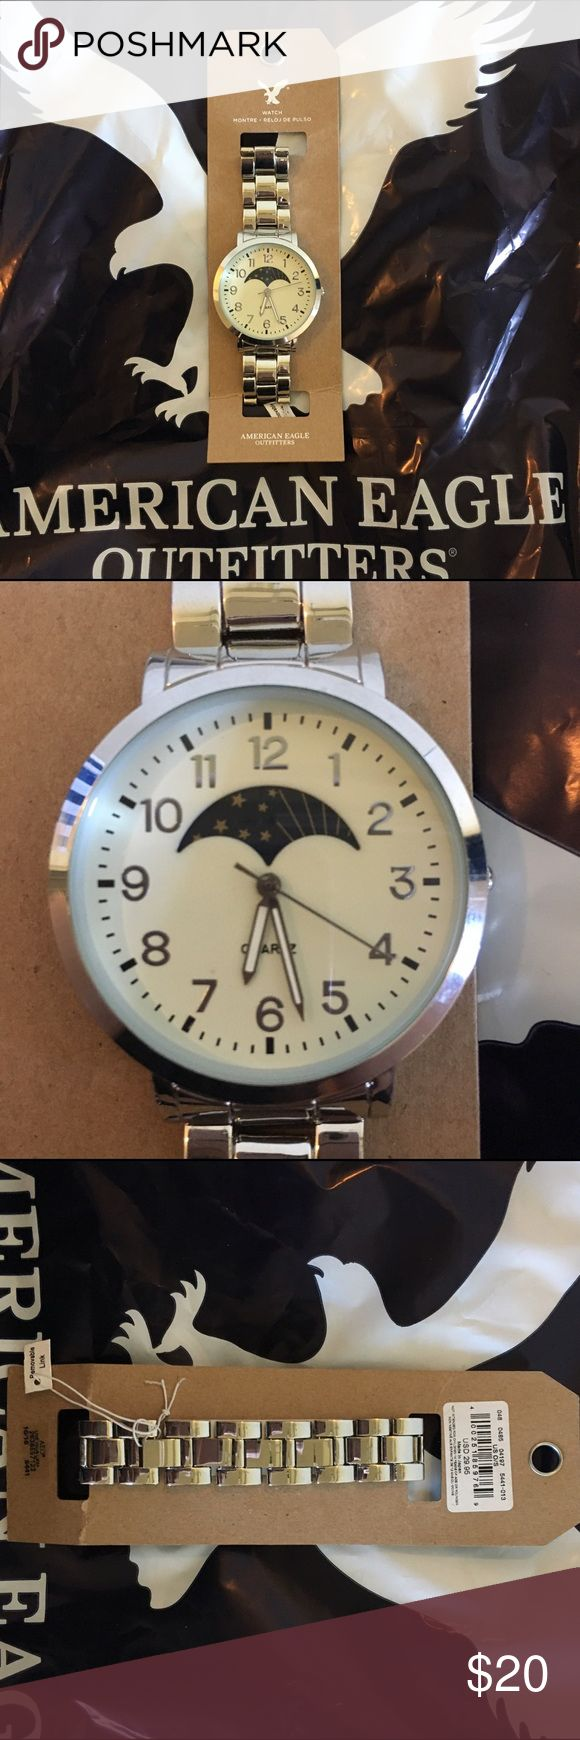 """American Eagle Outfitters silver sun & moon watch Brand new American Eagle sun and moon watch.  I believe it is a unisex style. 1.5"""" across Face. The sun and moon change places depending on the time of day. American Eagle Outfitters Accessories Watches"""